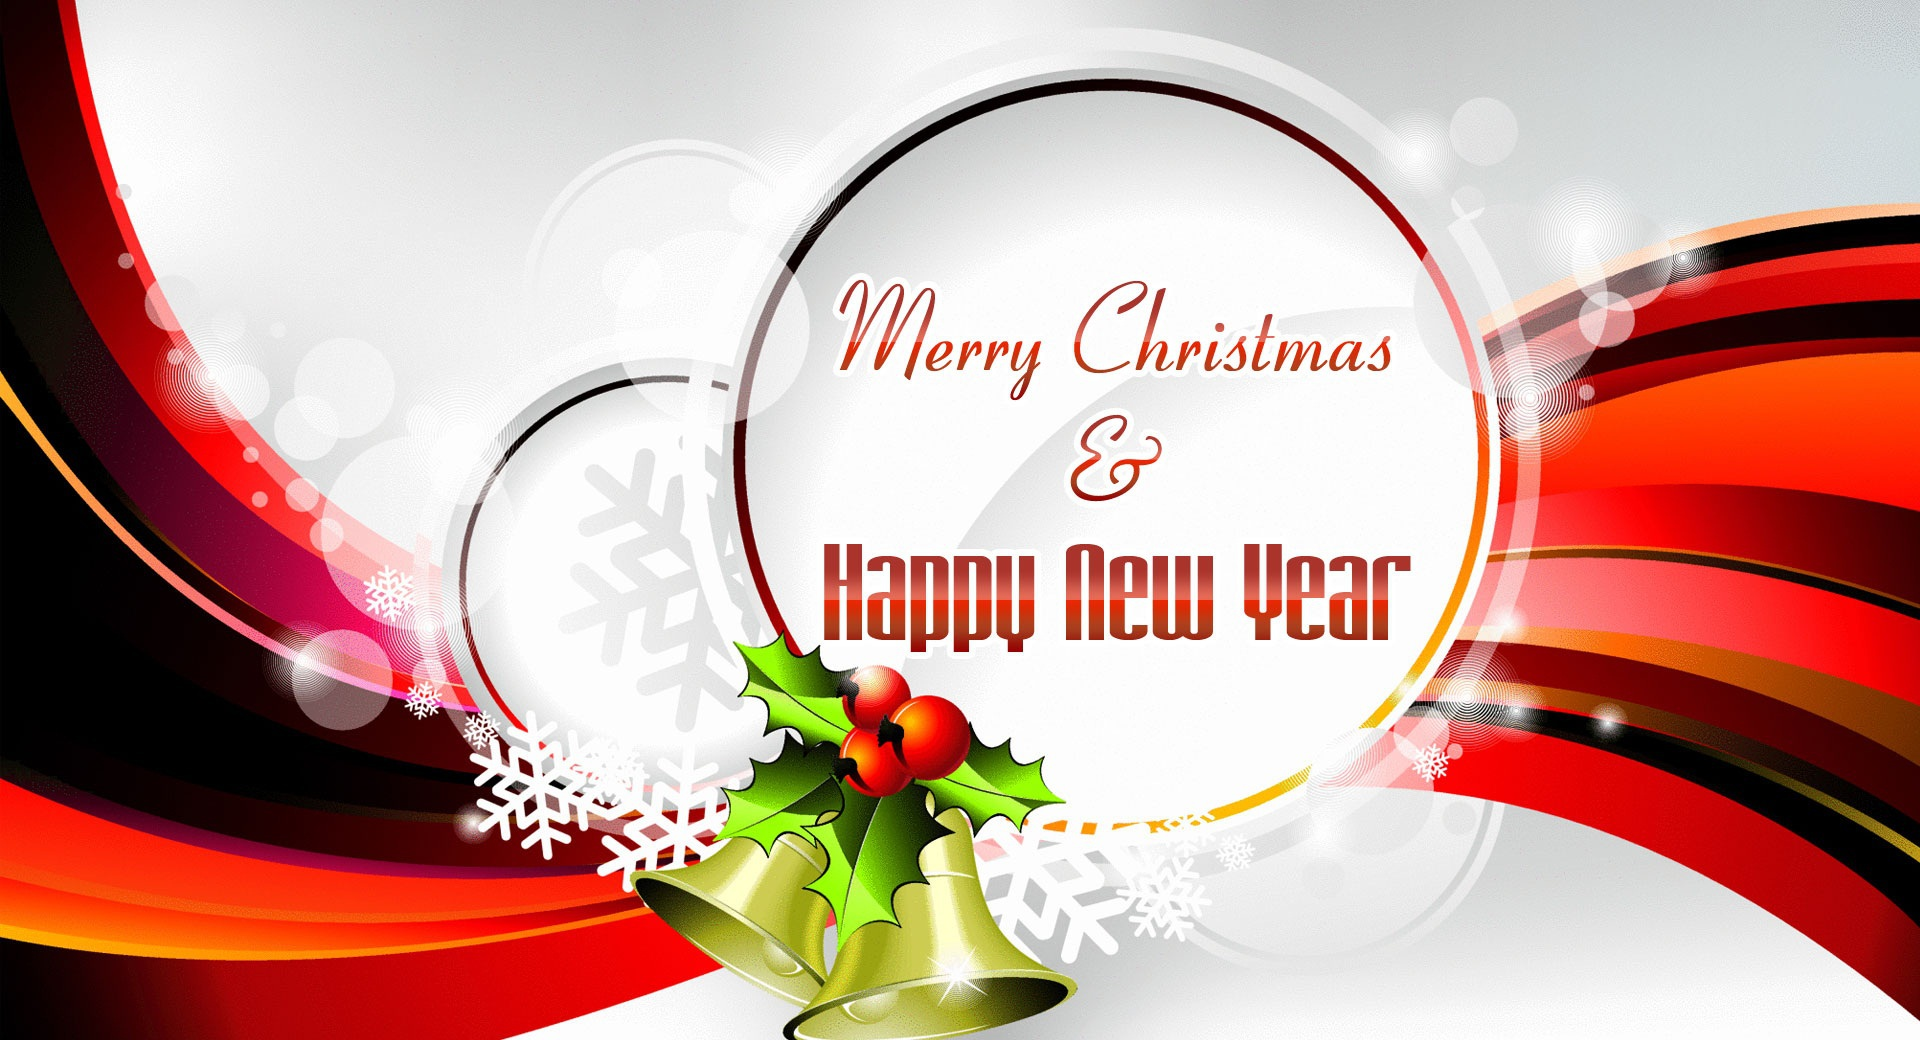 Happy New Year Merry Christmas Wallpapers